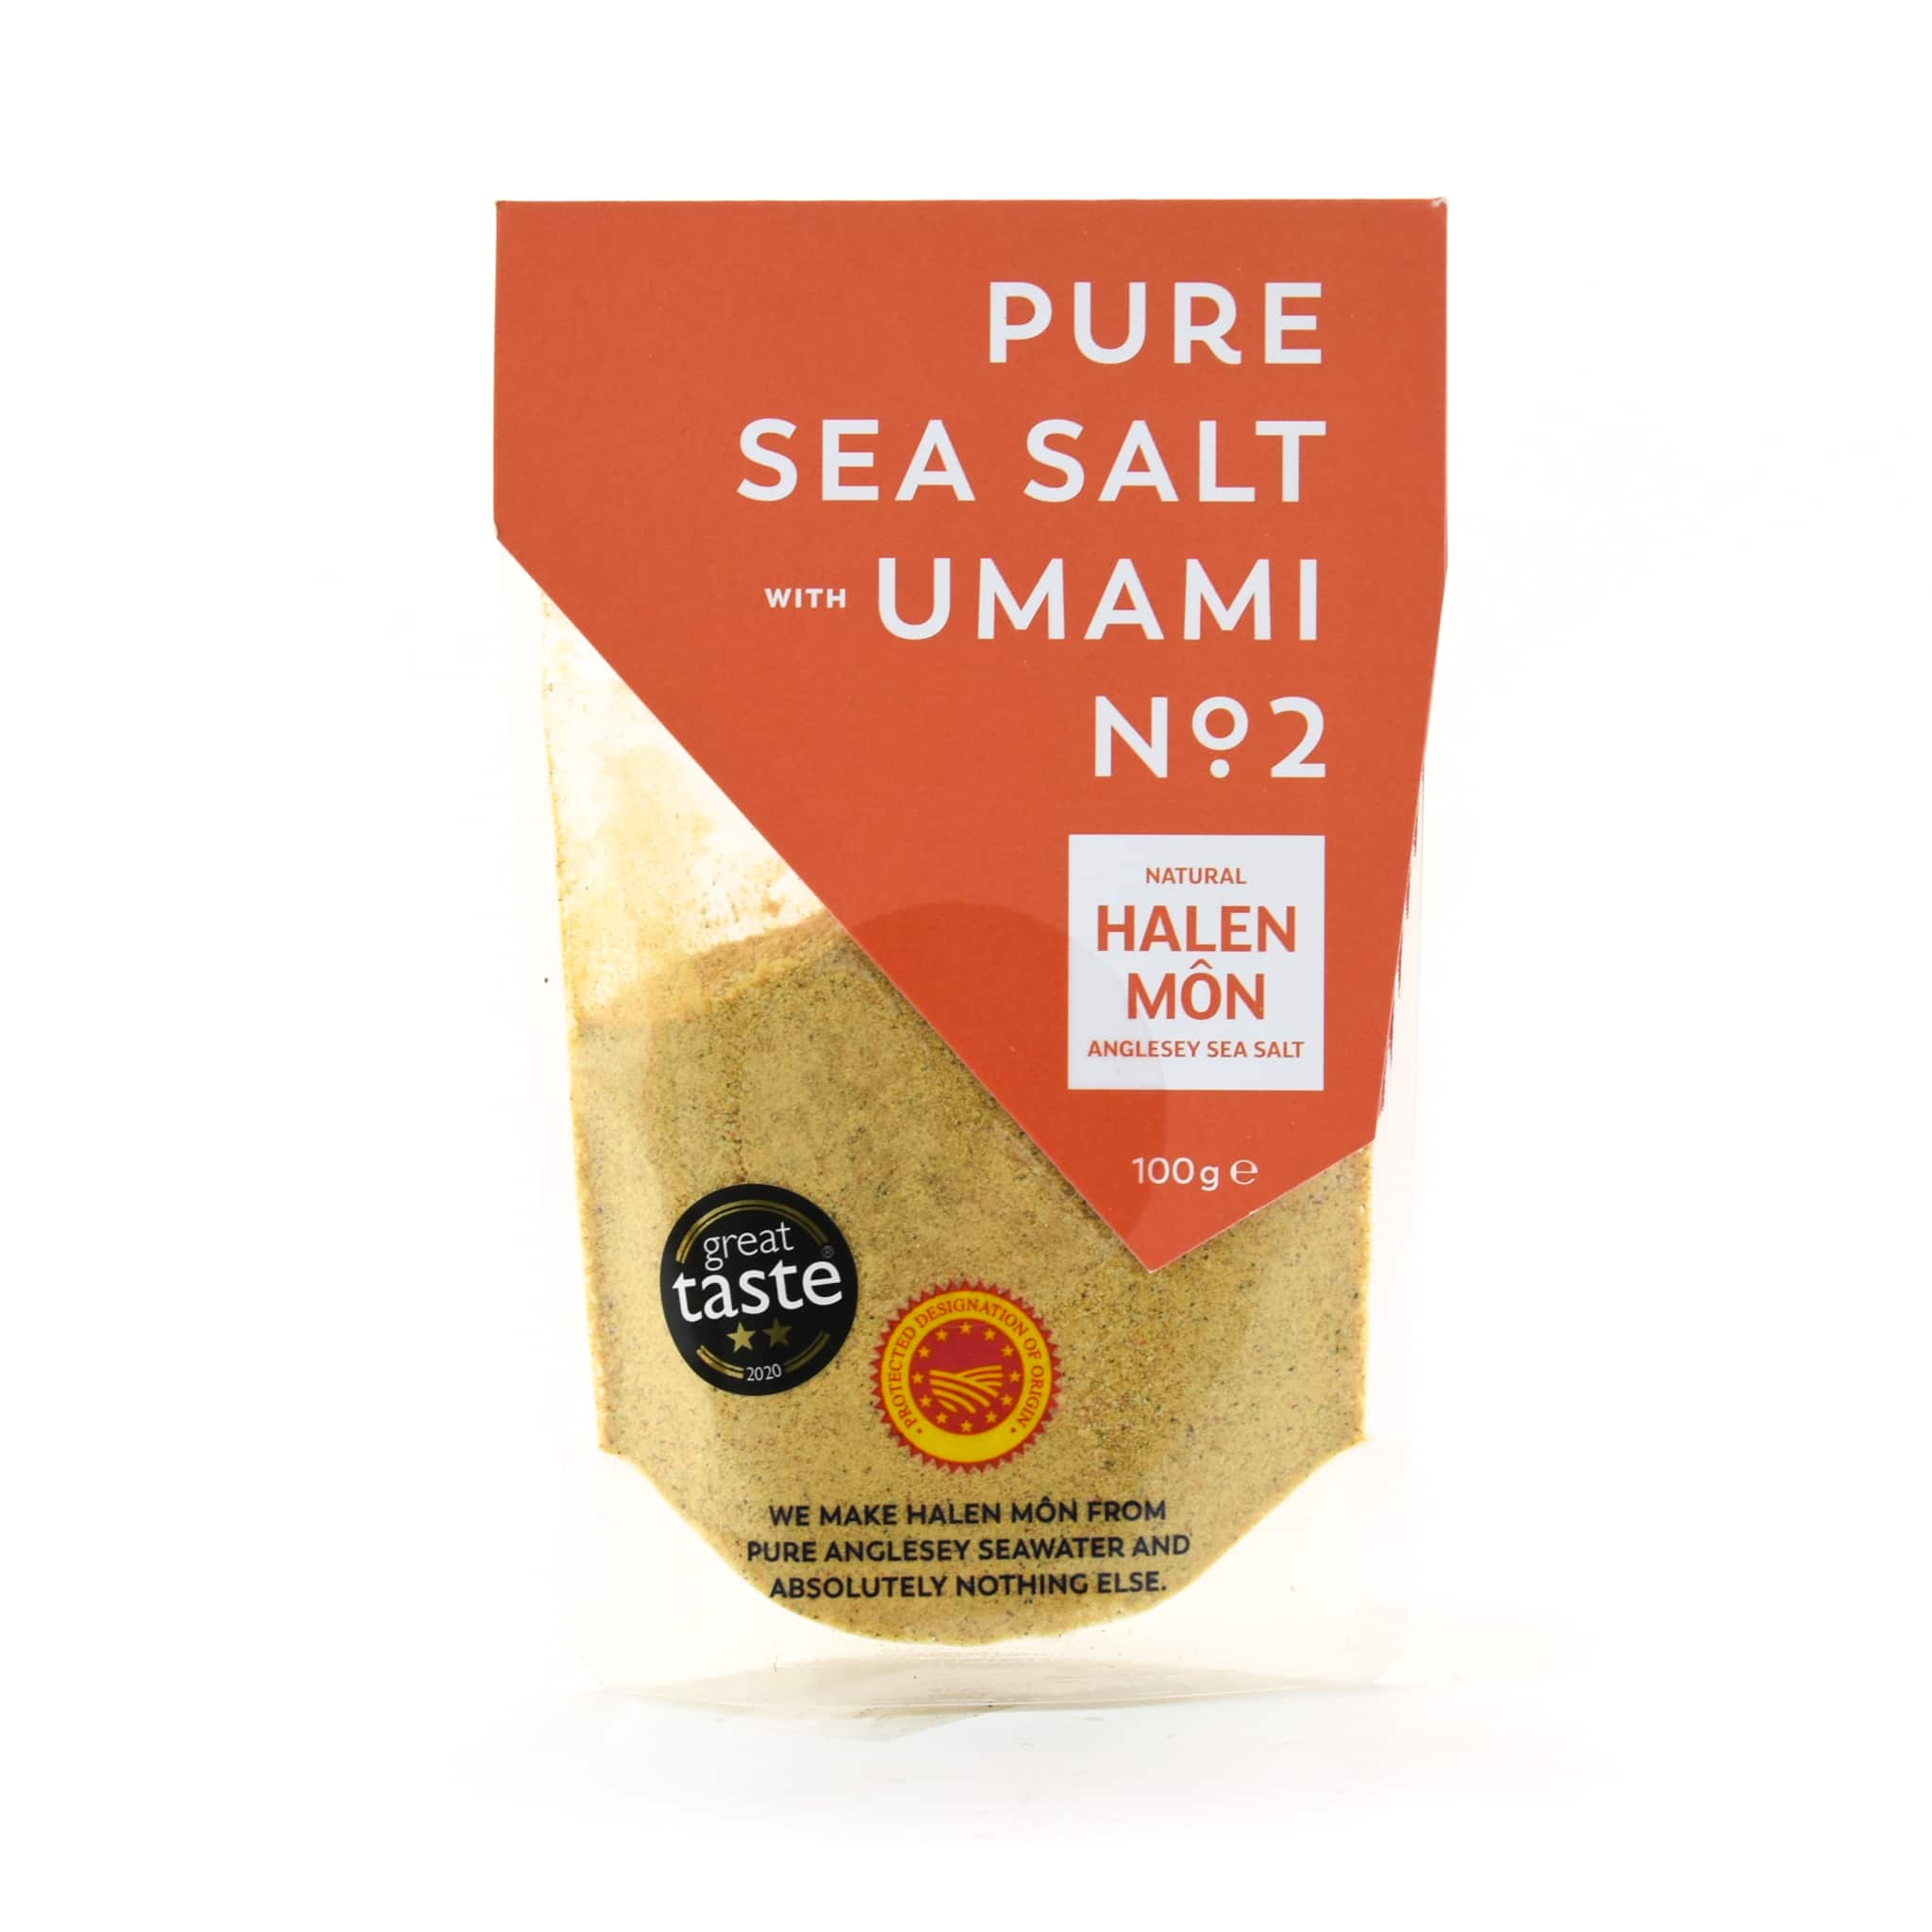 Halen Môn Umami Sea Salt 100g